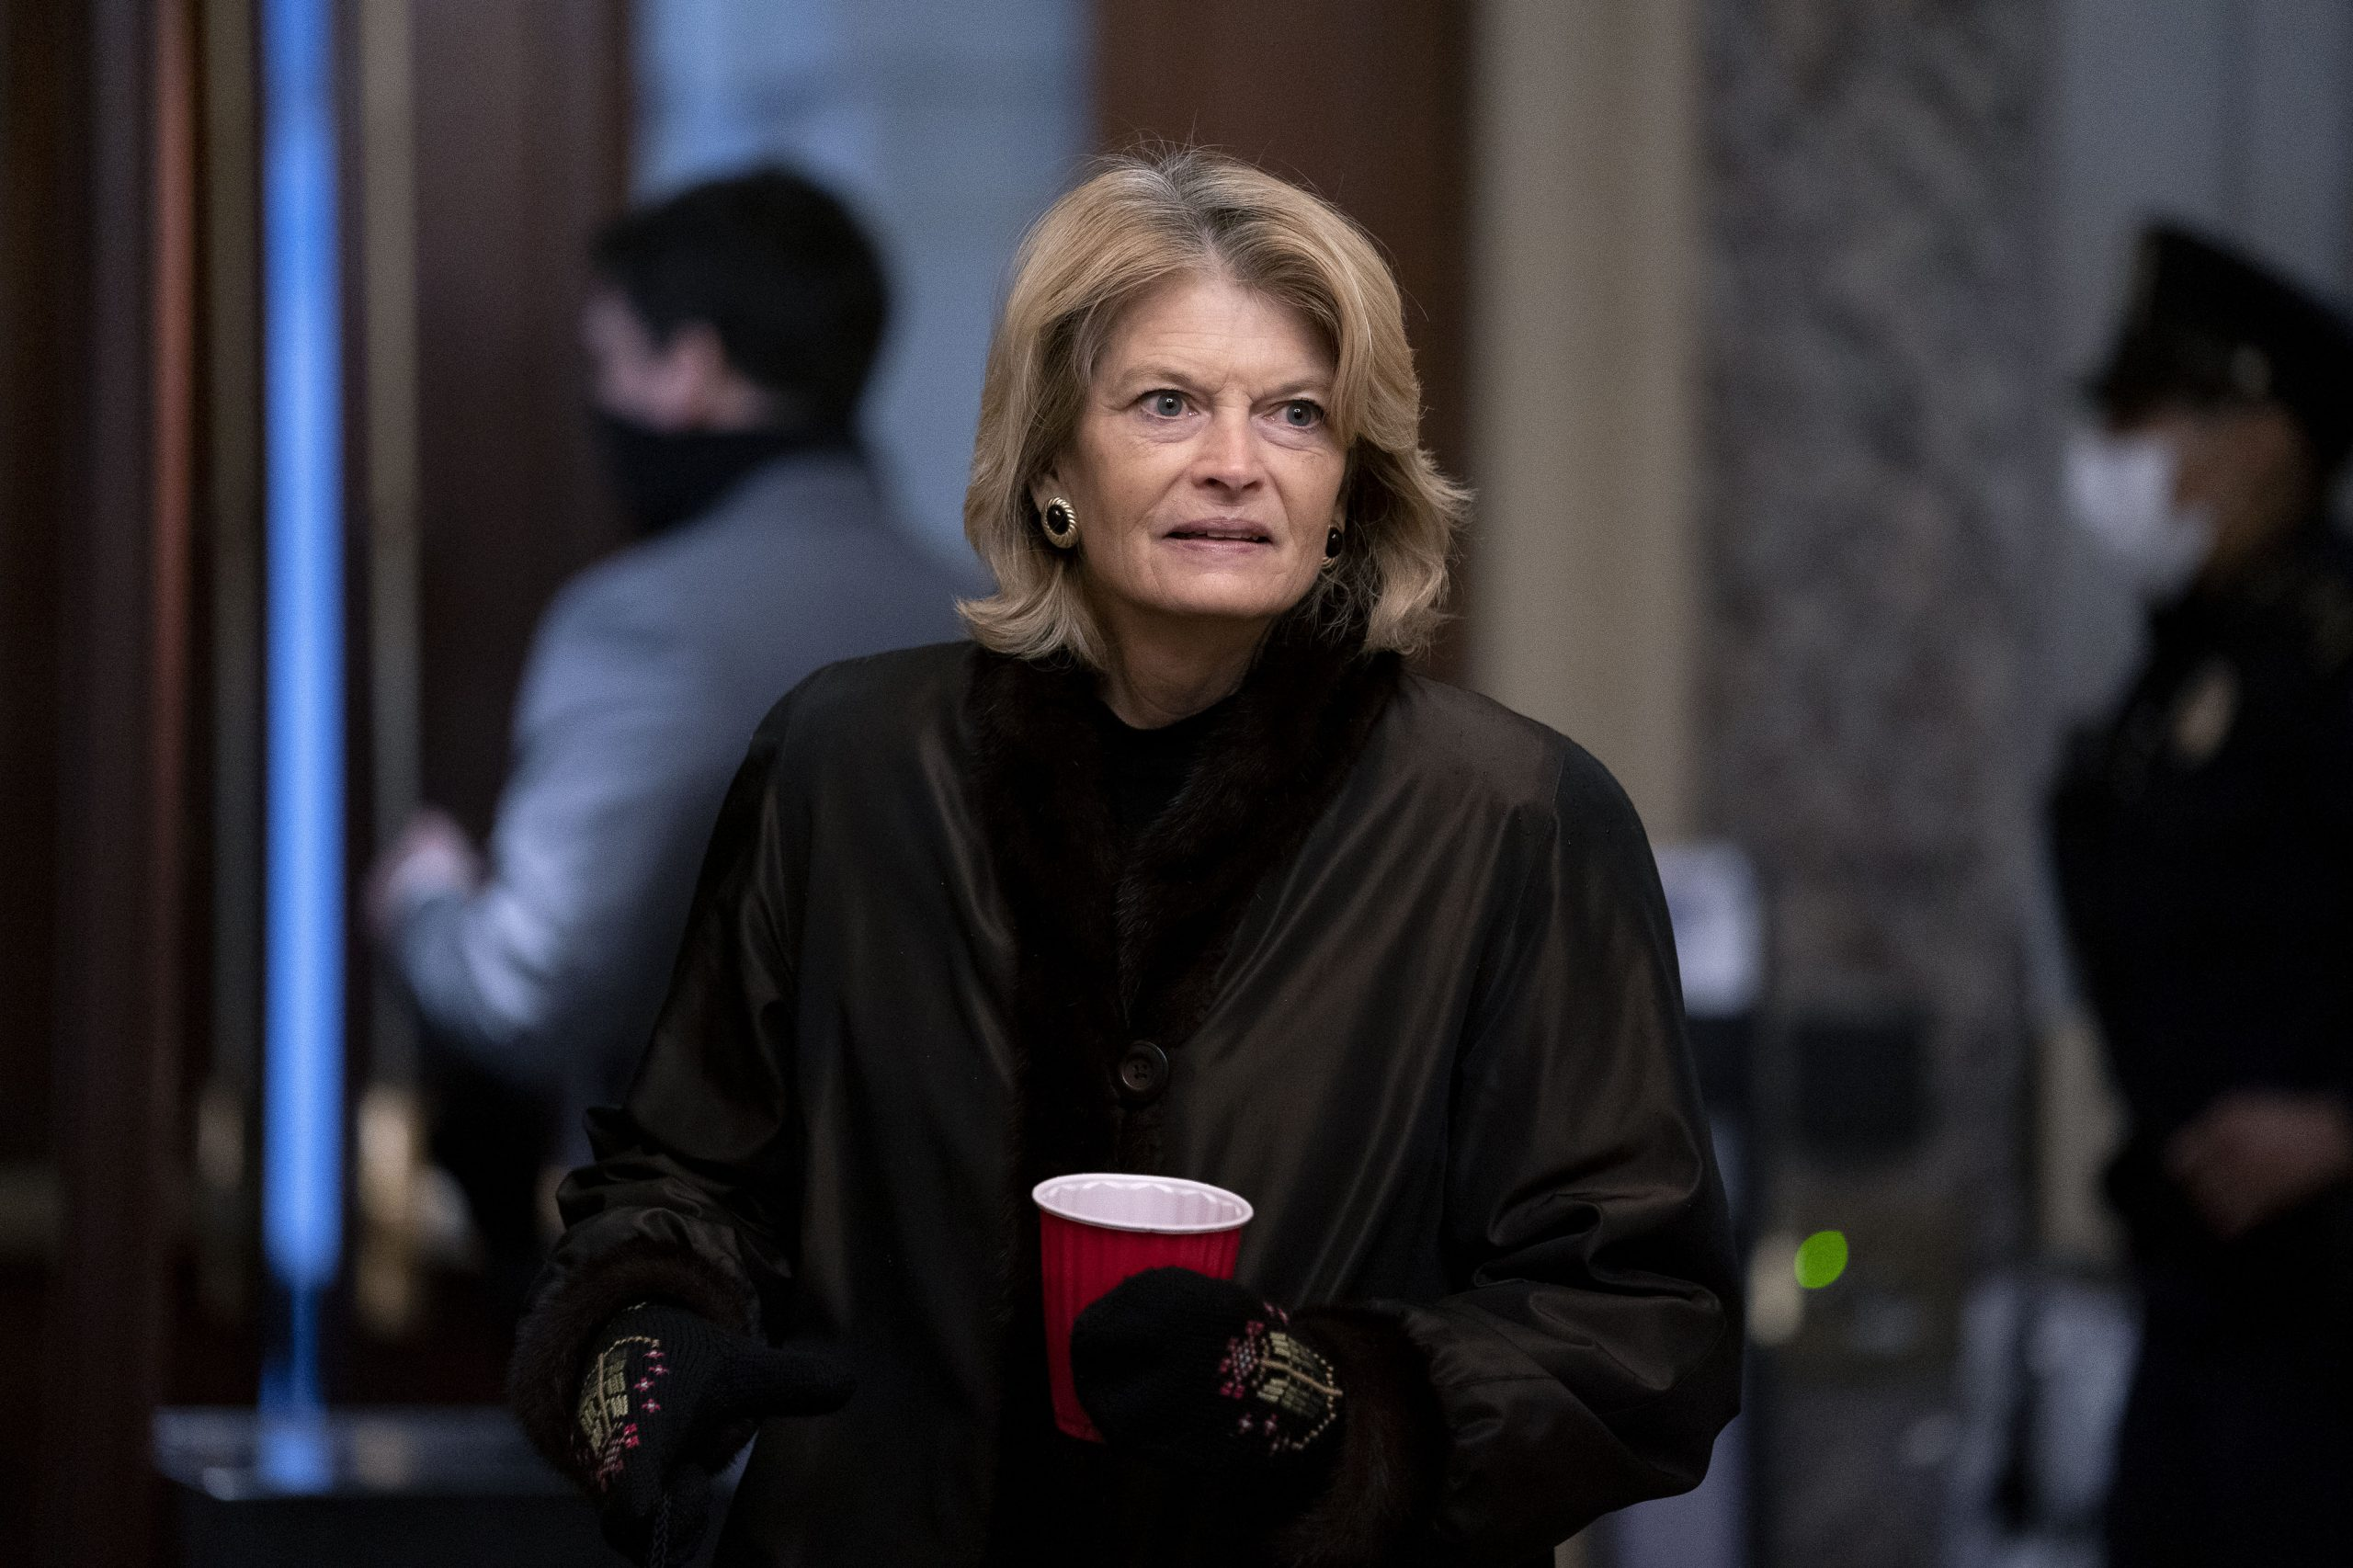 Up in '22, Murkowski readies to face impeachment vote fallout